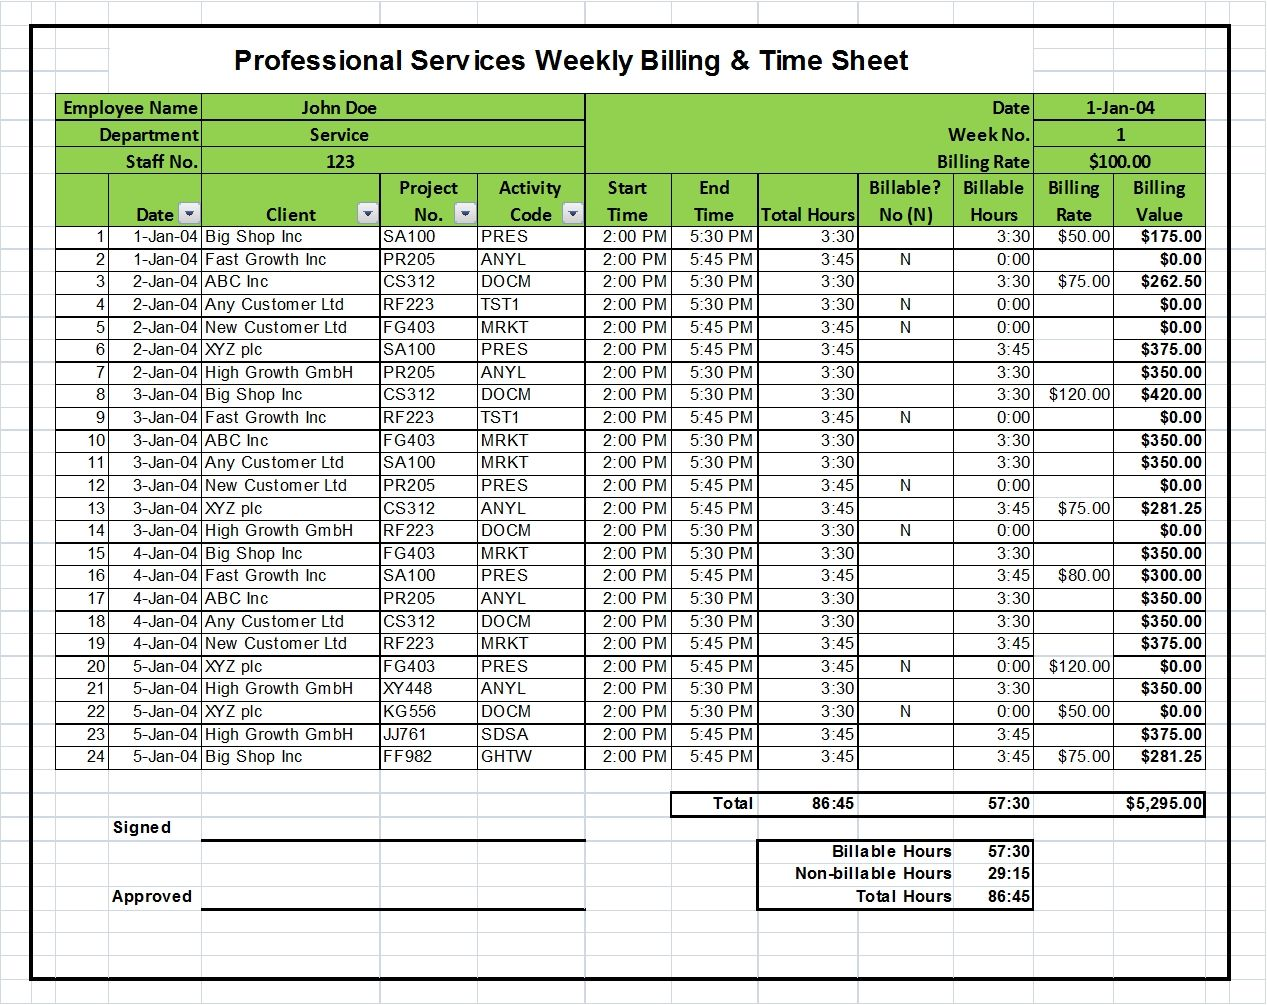 Excel Billing Timesheet Templates for Professional Services Projects ...